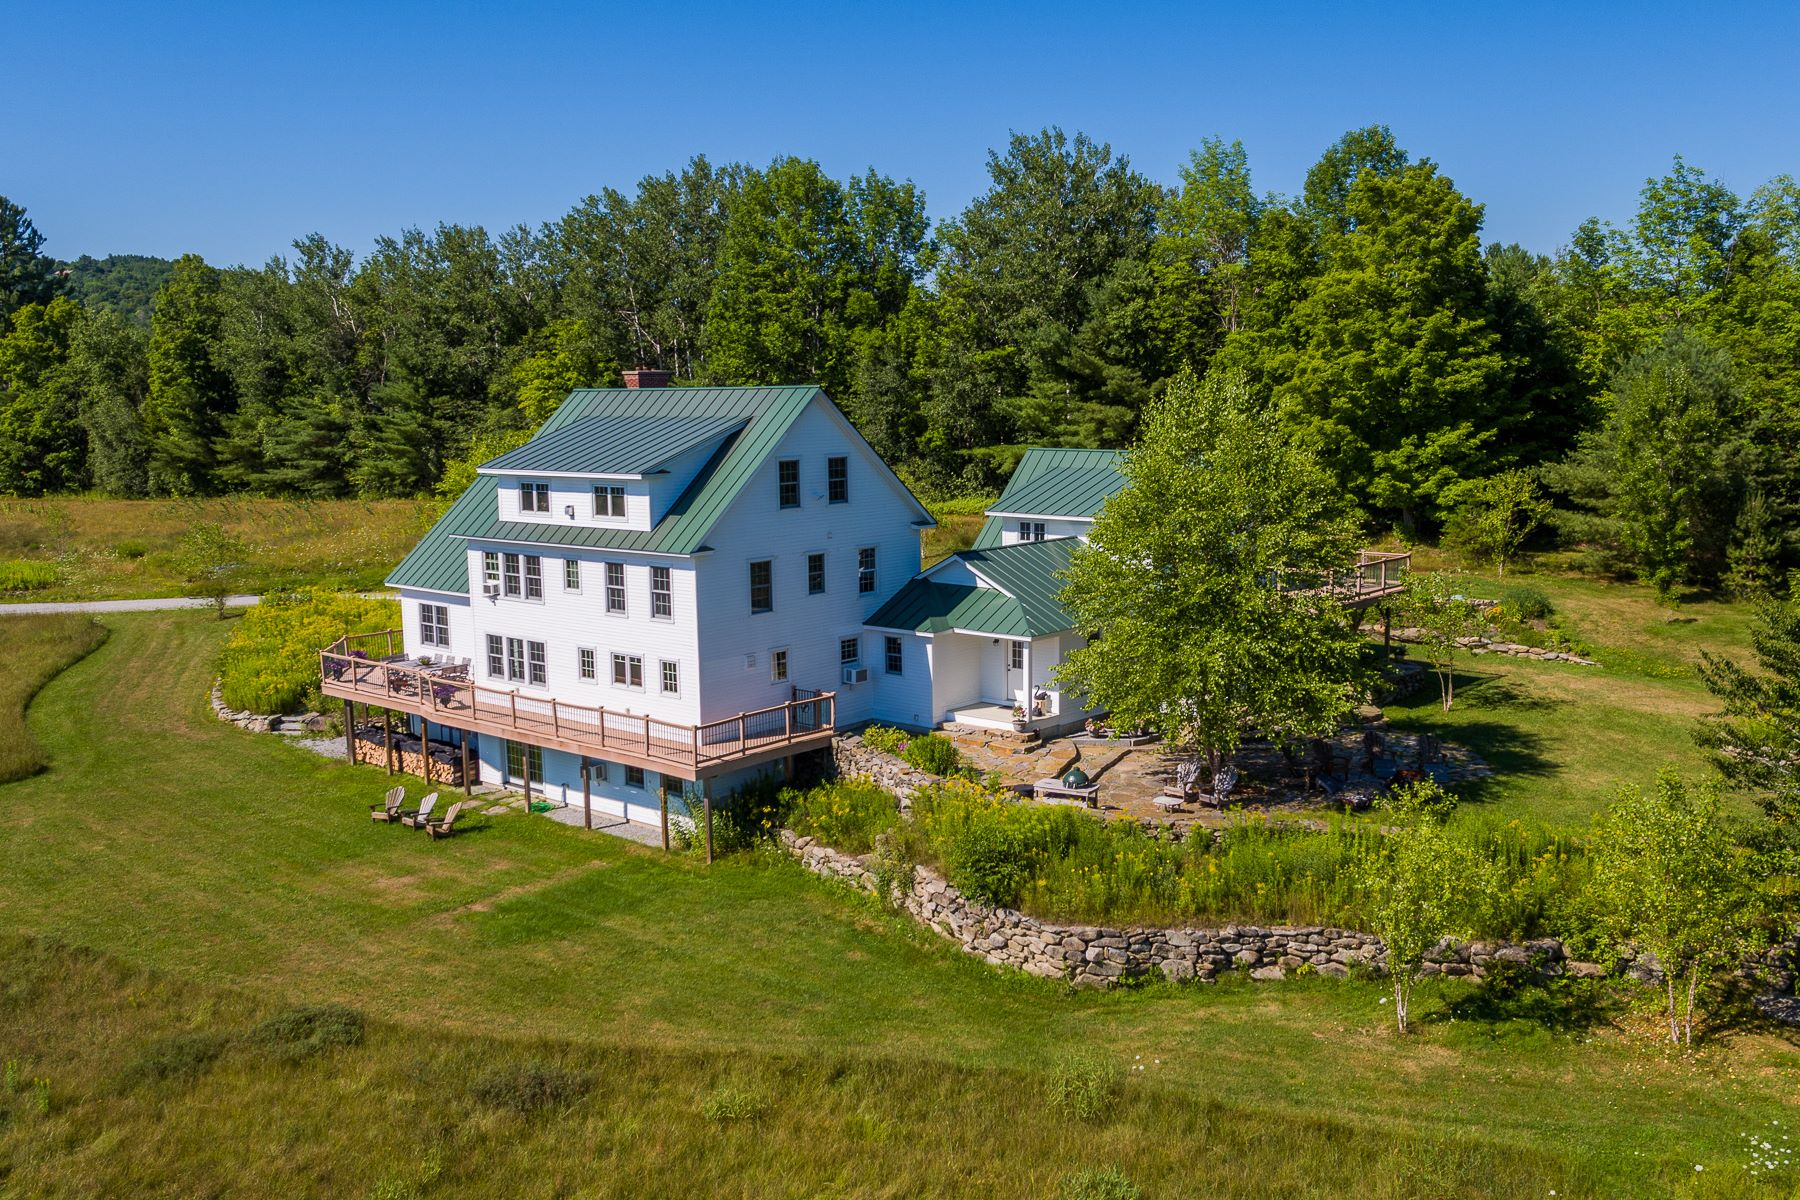 Single Family Home for Sale at 593 Lear Hill Road Rd, Unity Unity, New Hampshire 03773 United States